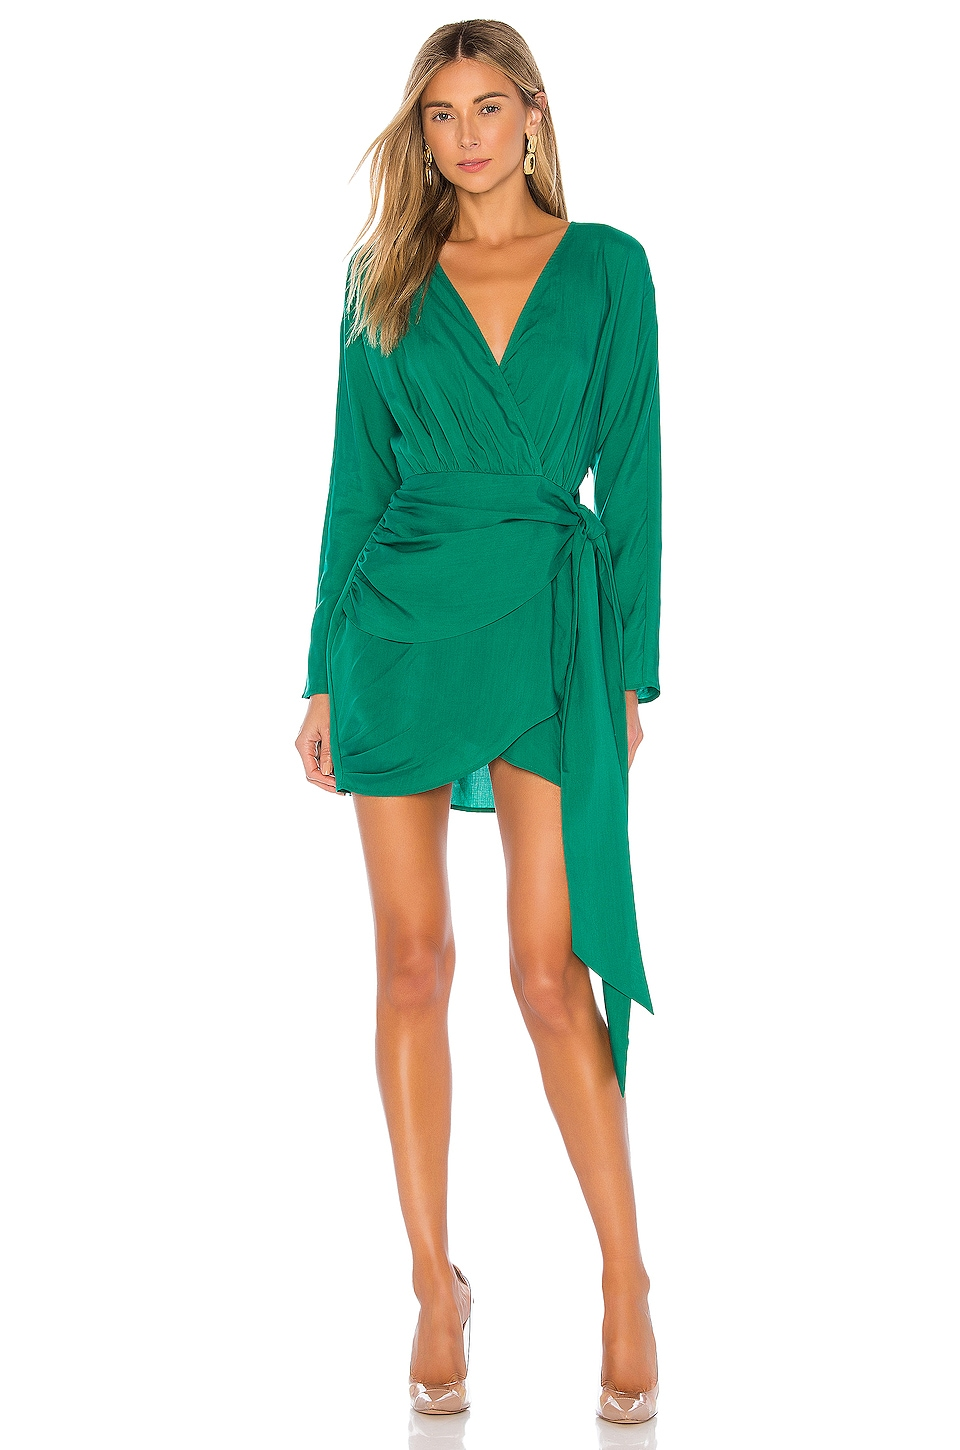 L'Academie The Lorriana Mini Dress in Green